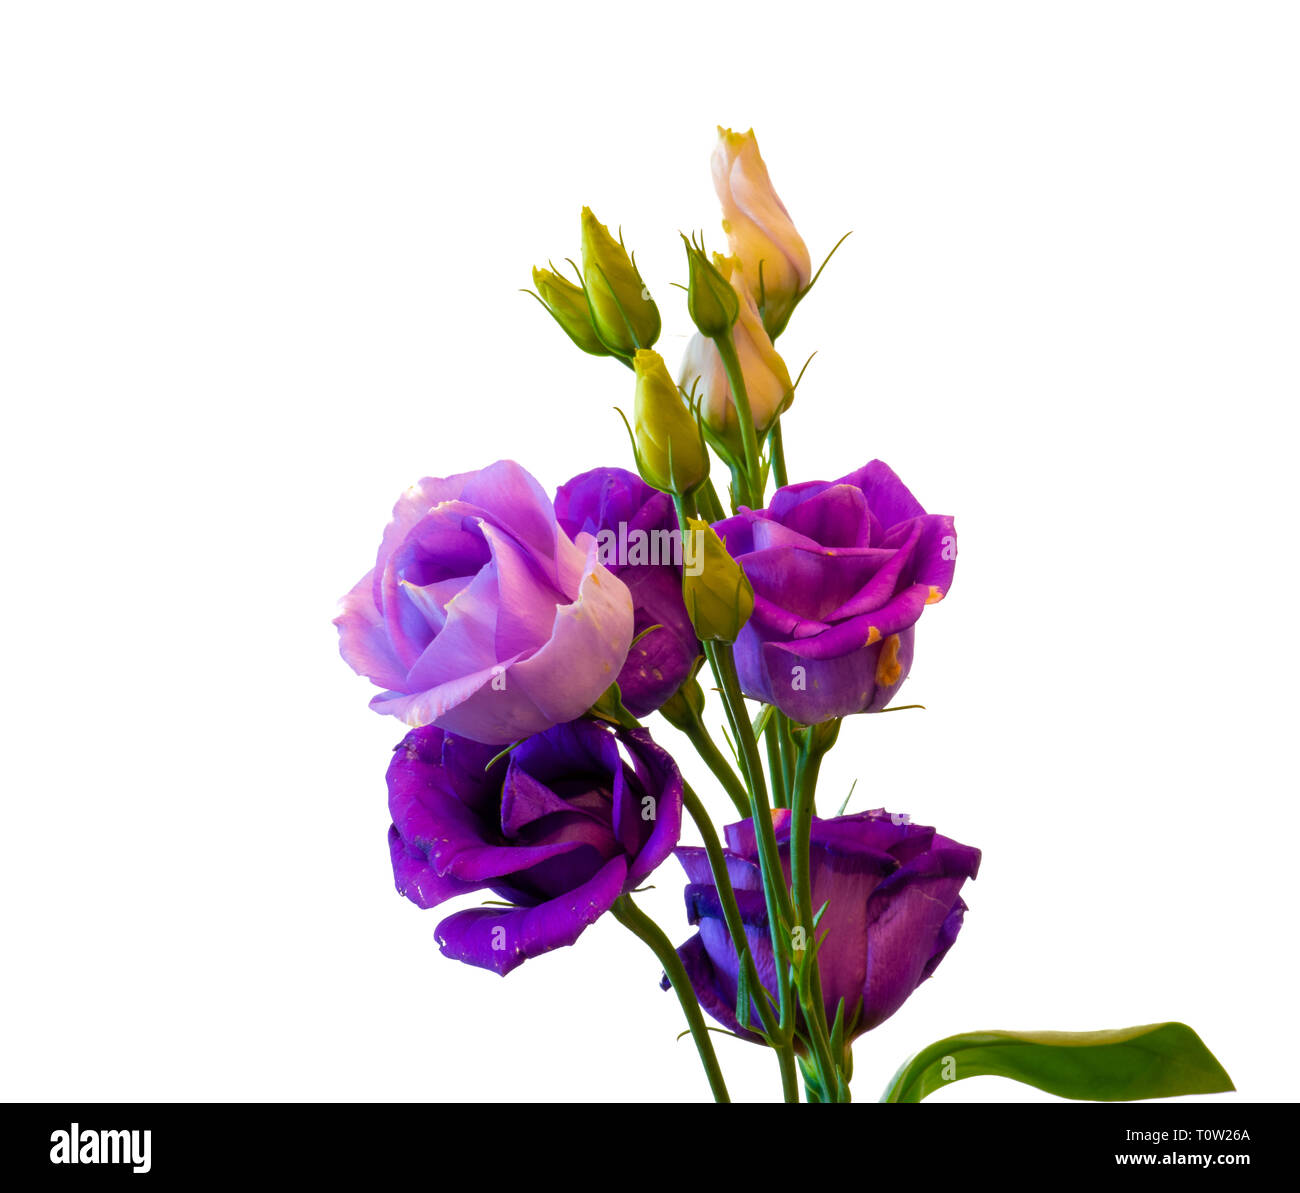 Fine art still life colorful macro of a bunch of violet blue lisianthus / showy prairie gentian / texas bluebell blossoms on white background - Stock Image